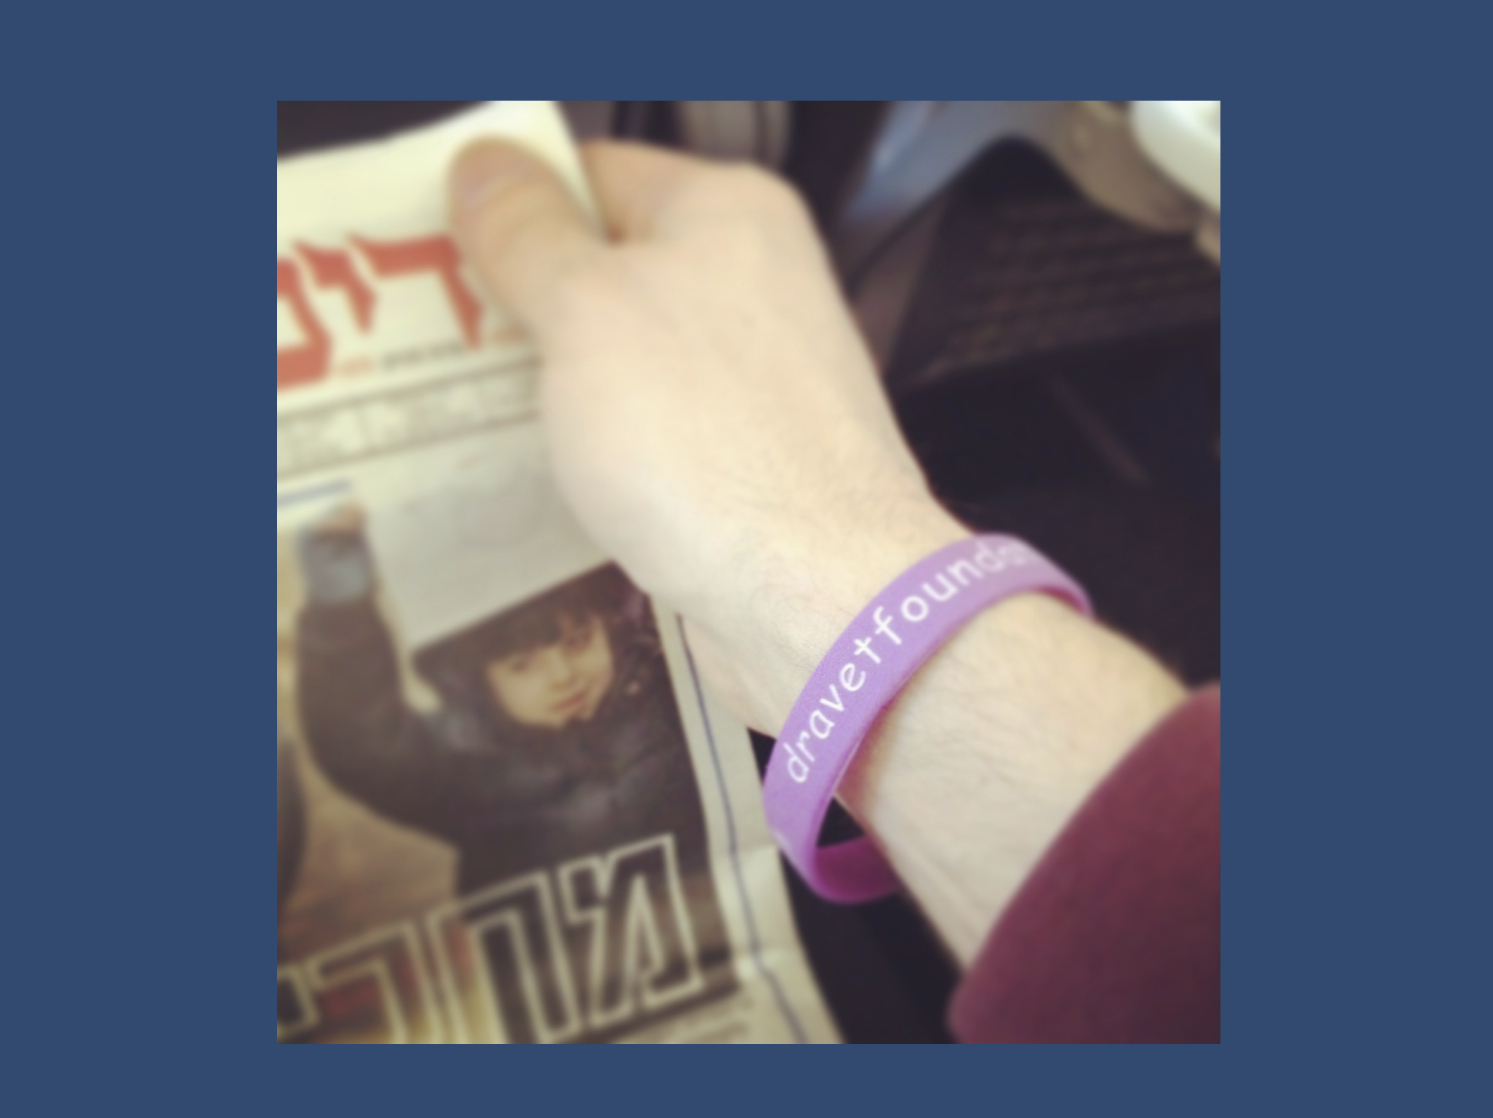 Wearing my Dravet Awareness bracelet on the flight to Tel Aviv last December.